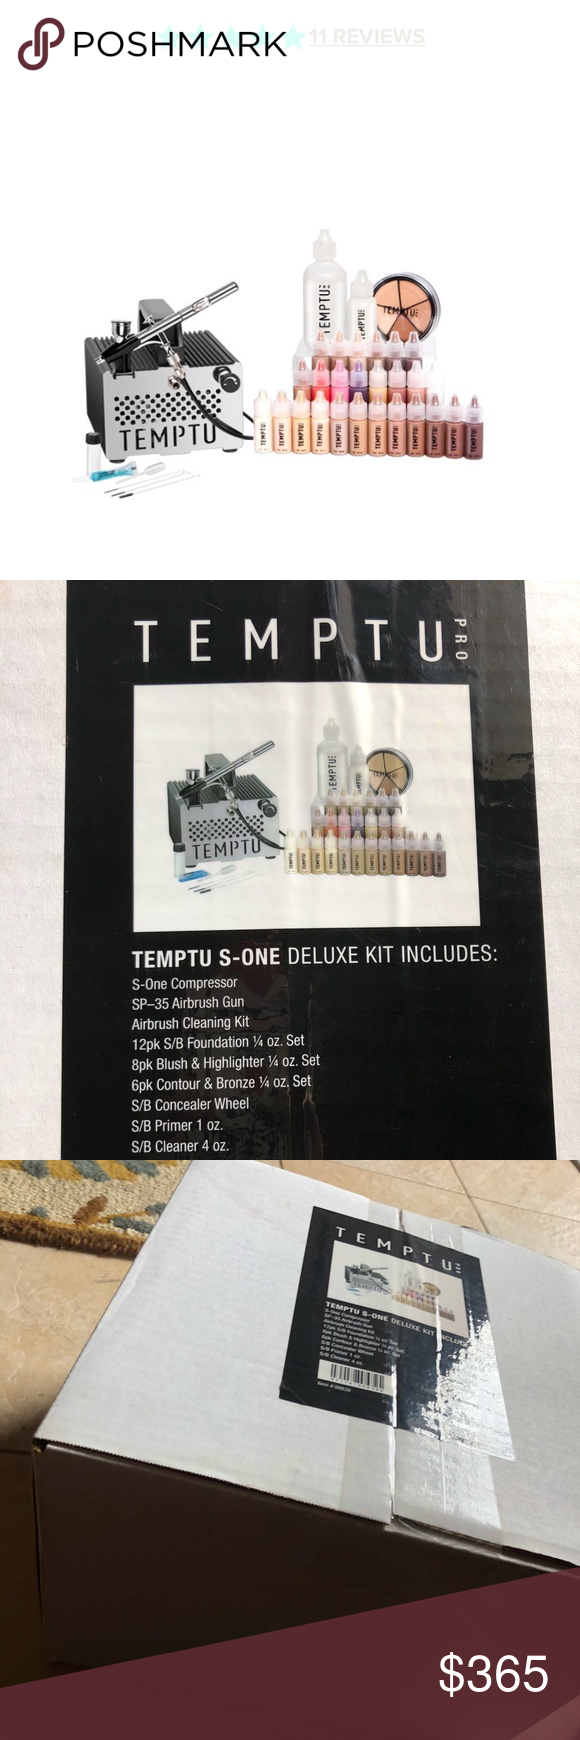 TEMPTU SONE DELUXE KIT UNUSED A STAPLE FOR MAKEUP ARTISTS